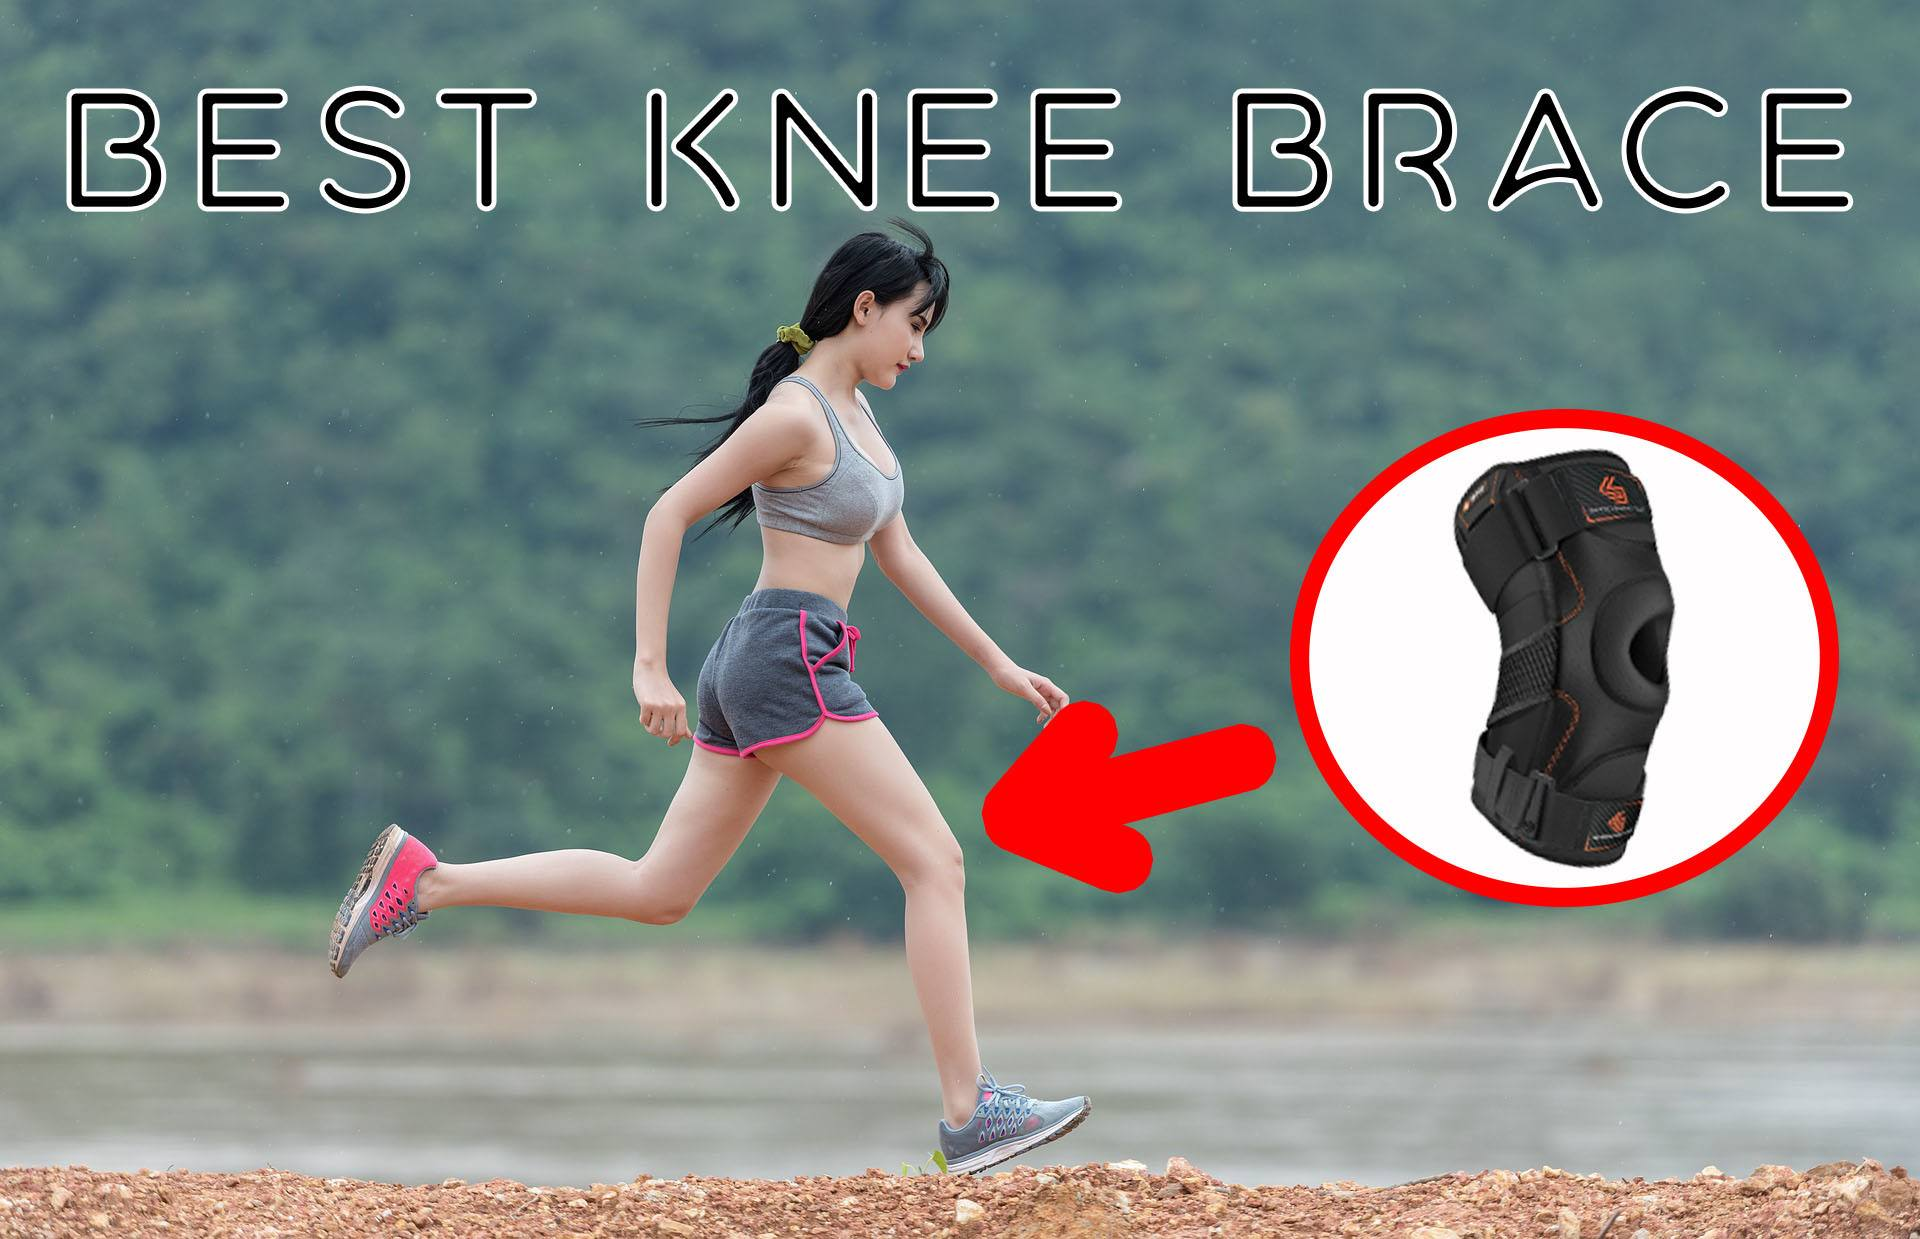 featured image for athlionz article best knee braces